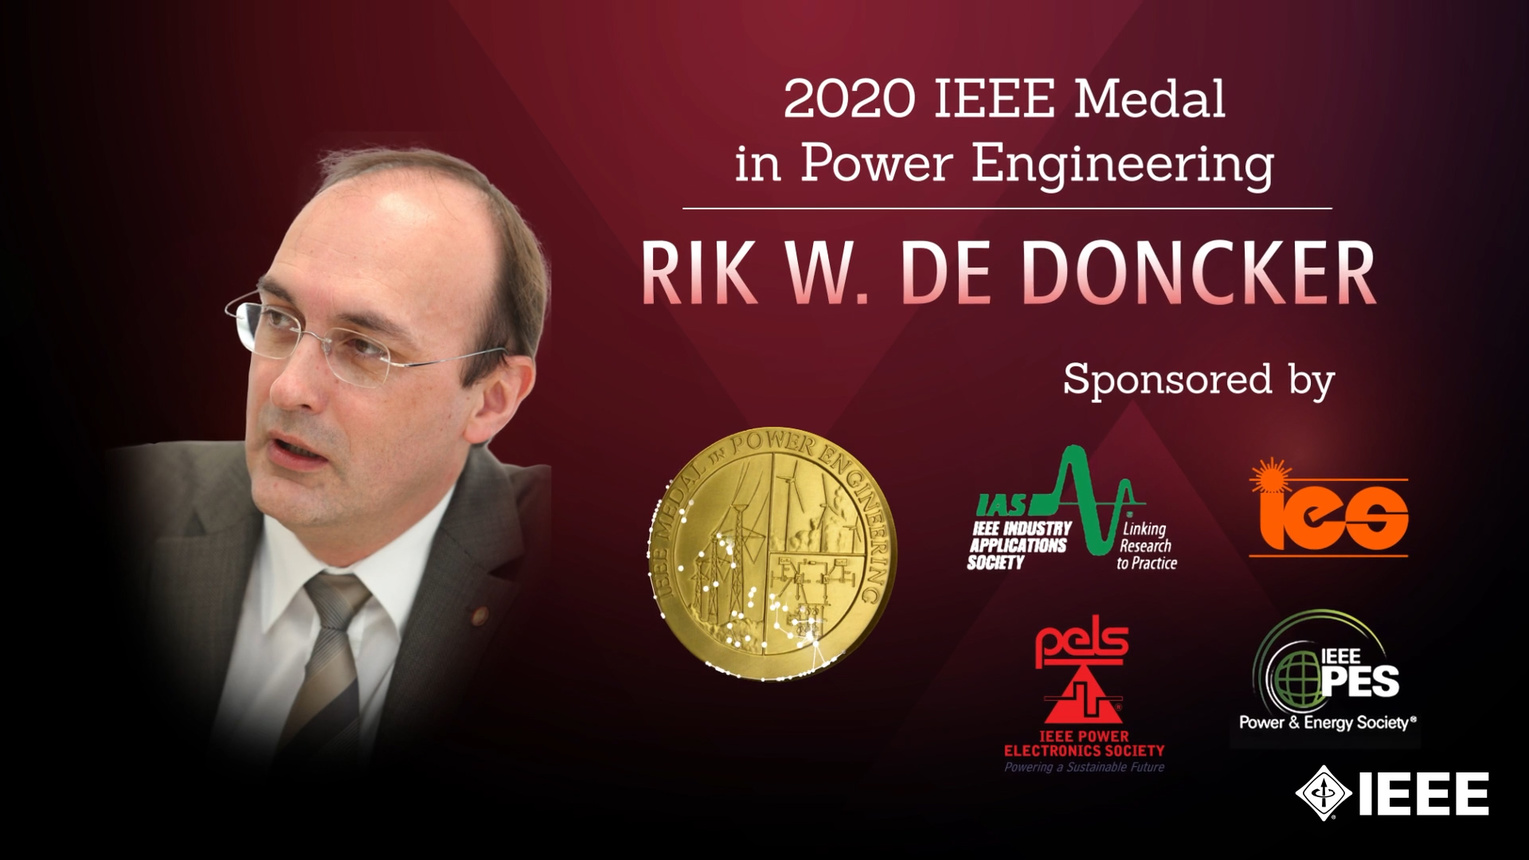 Honors 2020: Rik W. De Doncker Wins the IEEE Power Engineering Medal